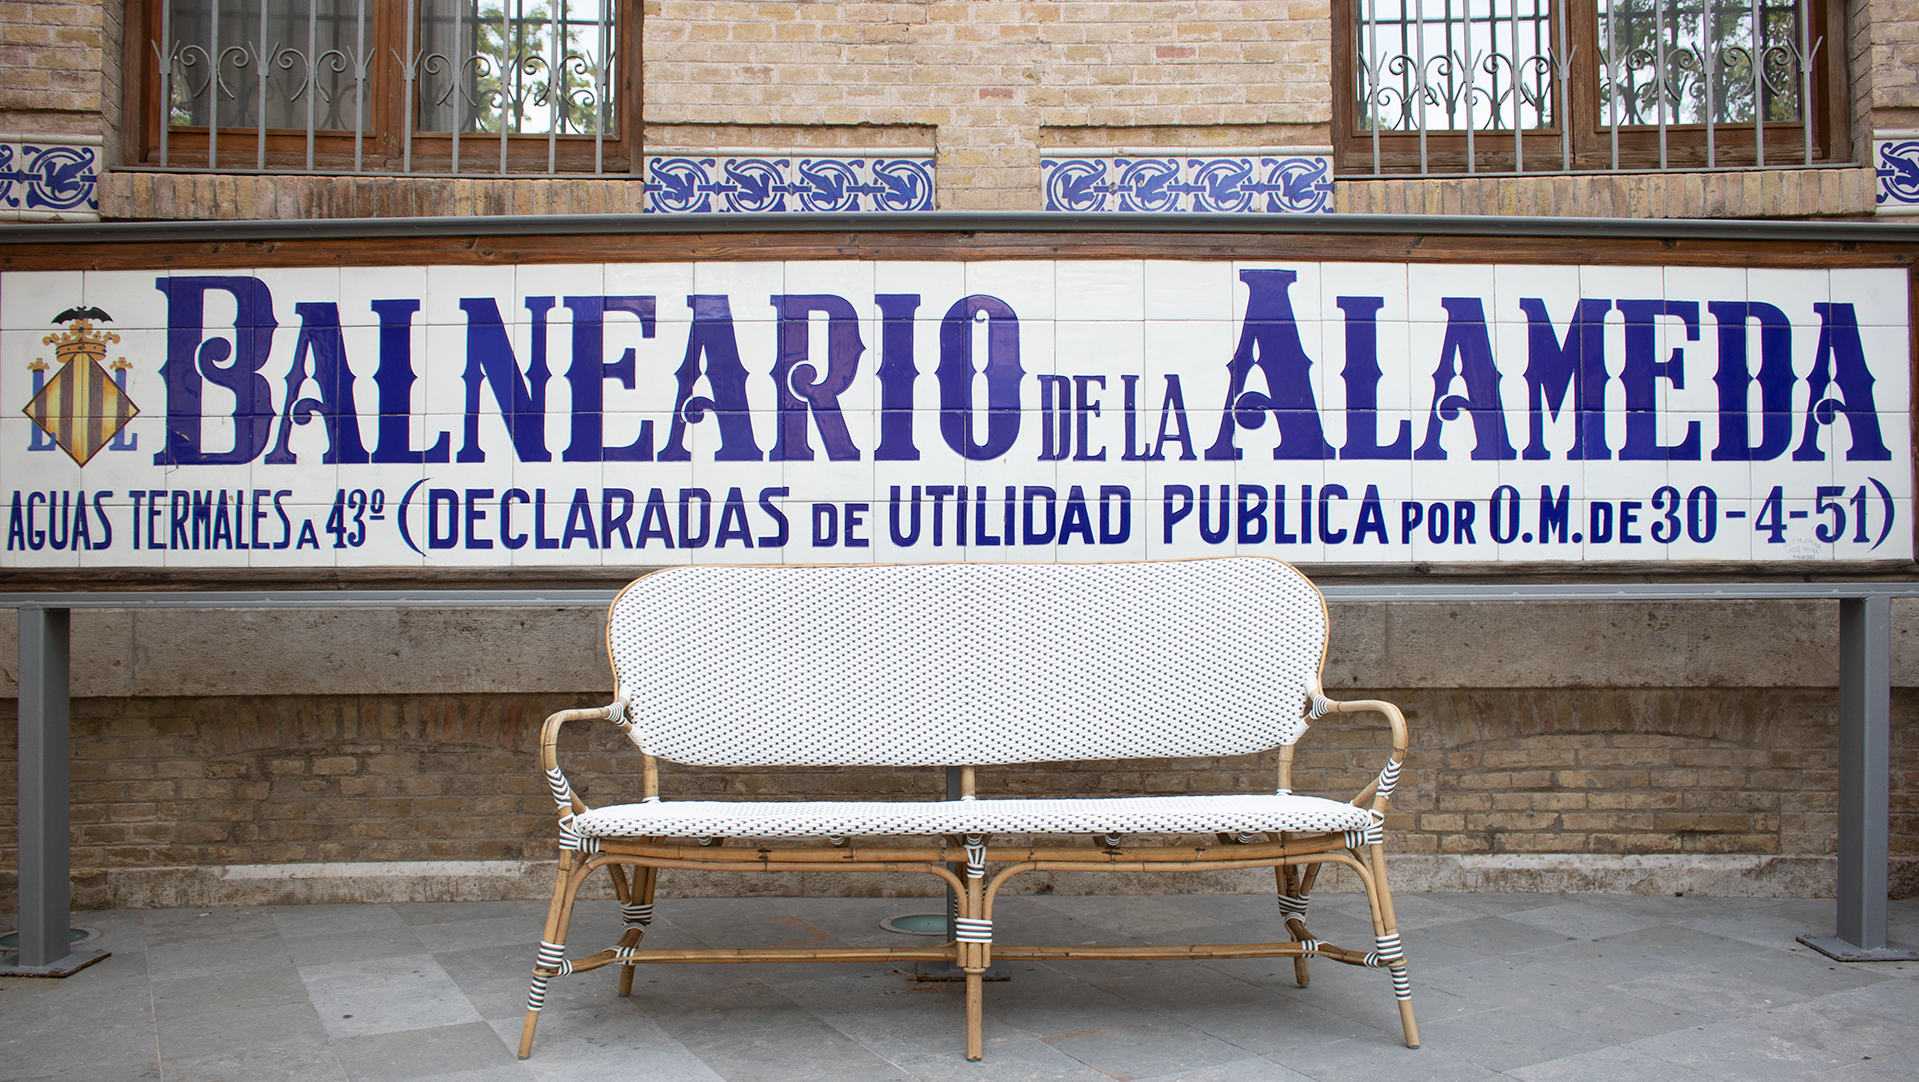 Sign of Balneario La Alameda